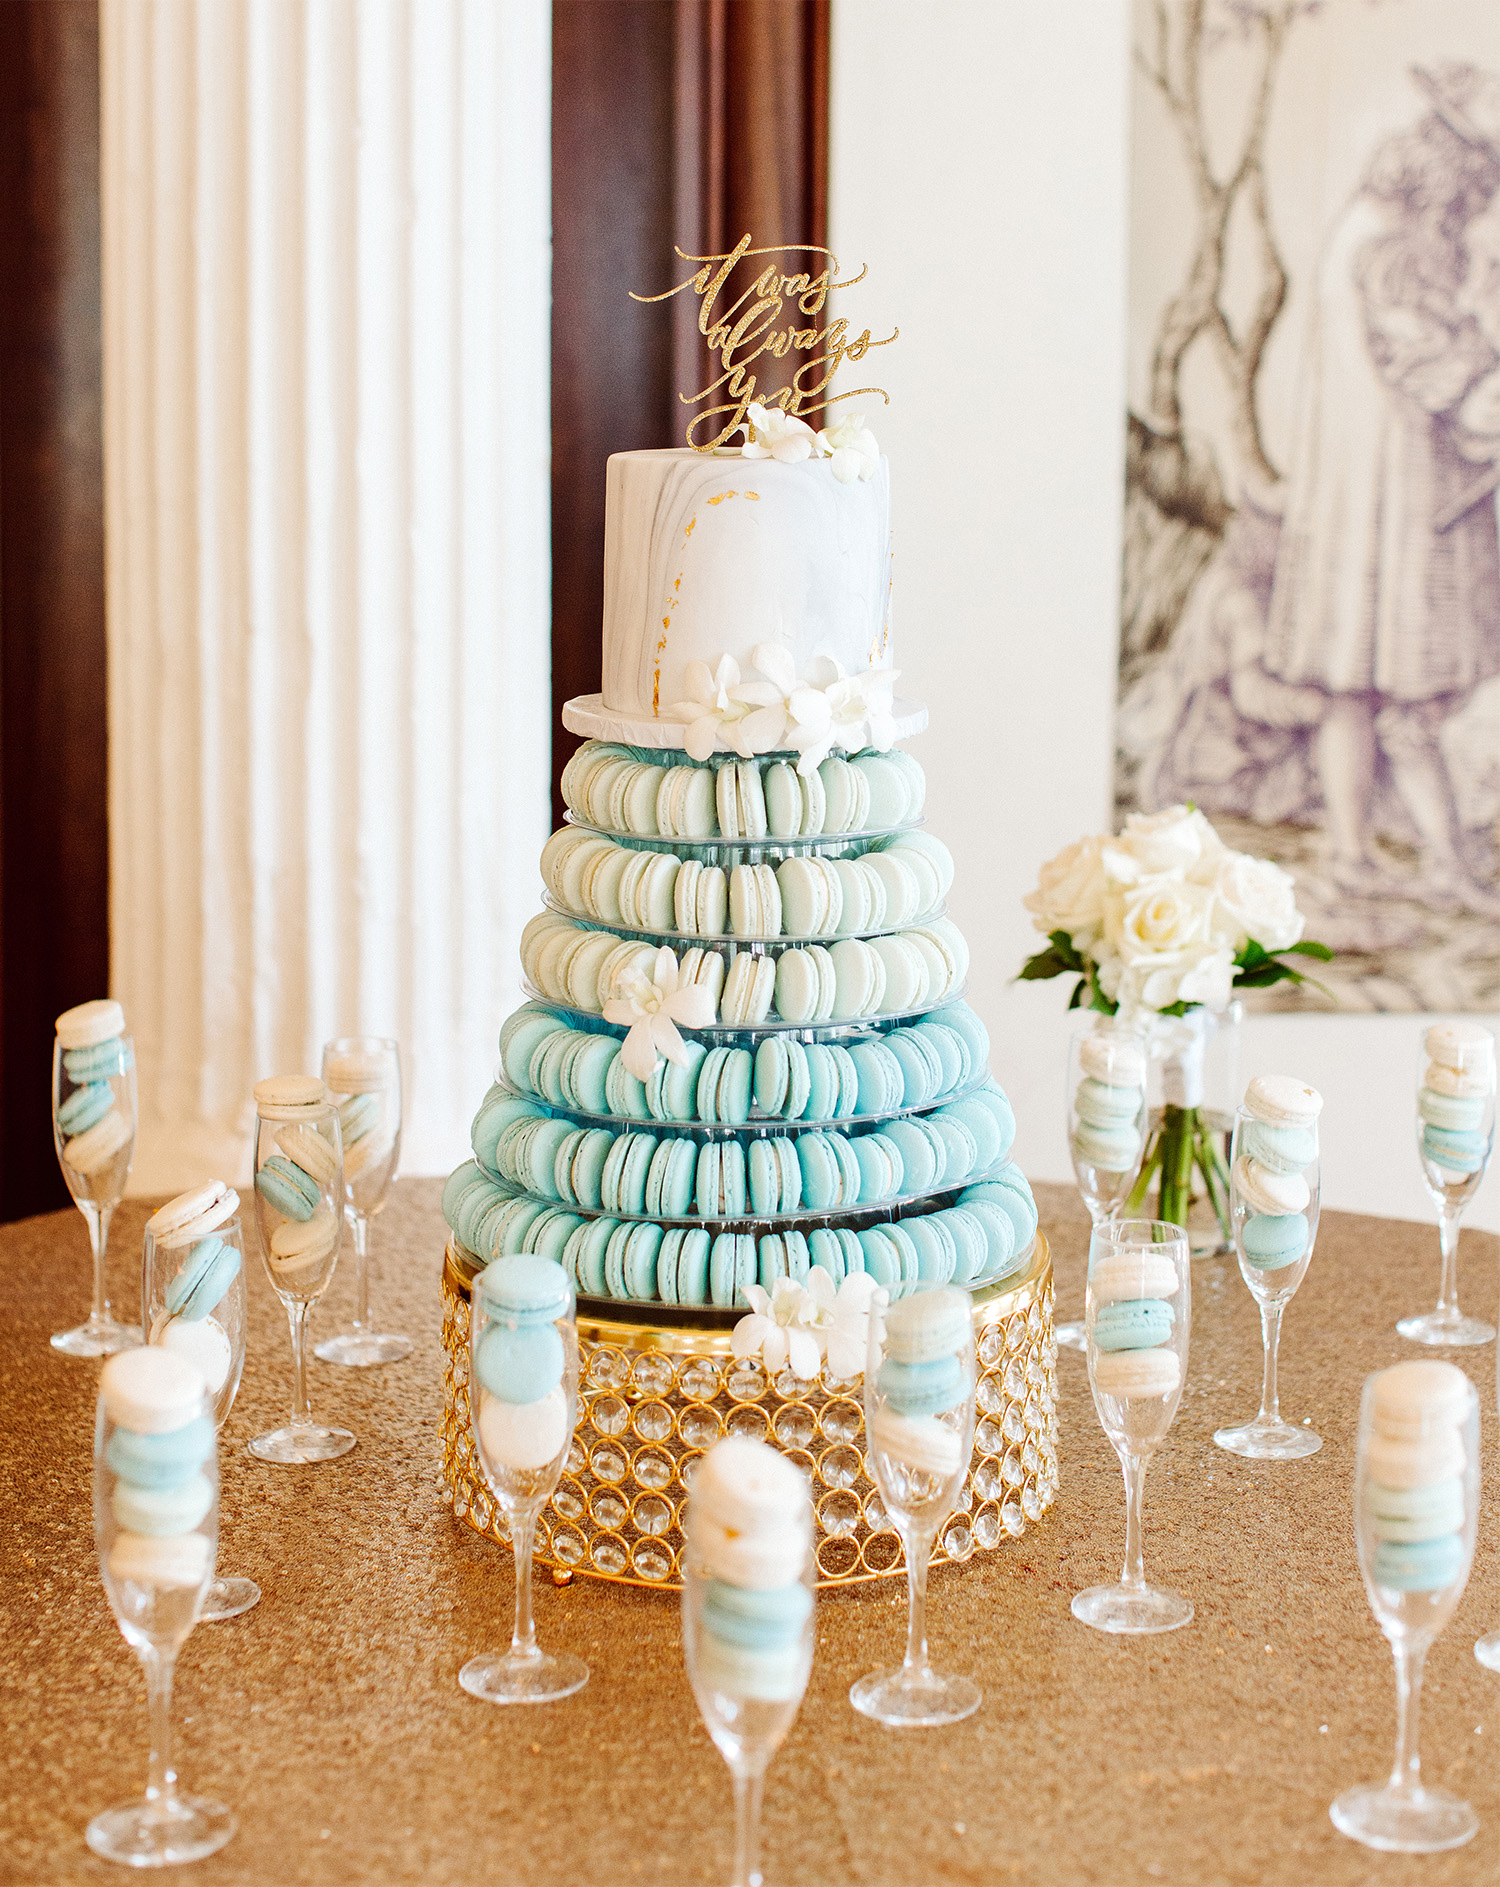 bryanna nick wedding cake macaroons